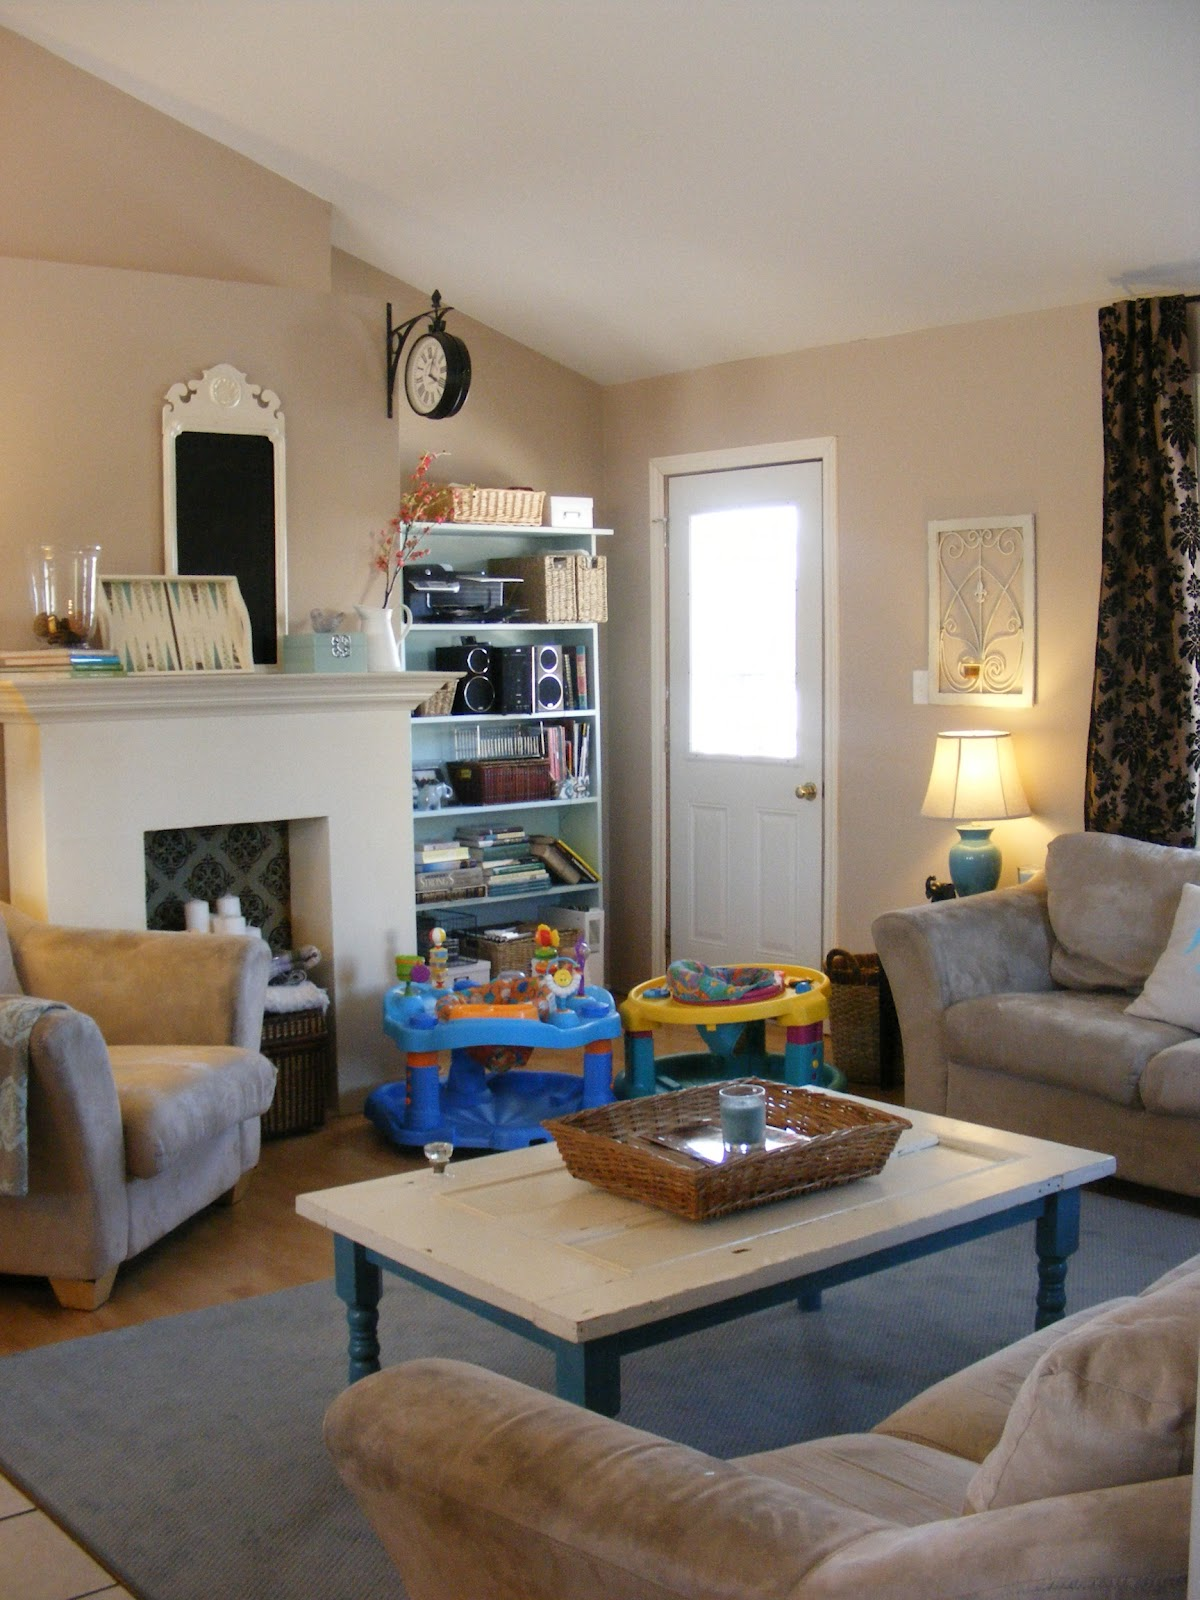 Show Living Rooms Already Decorated: {Home Staging 101} Part 2: My Living Room